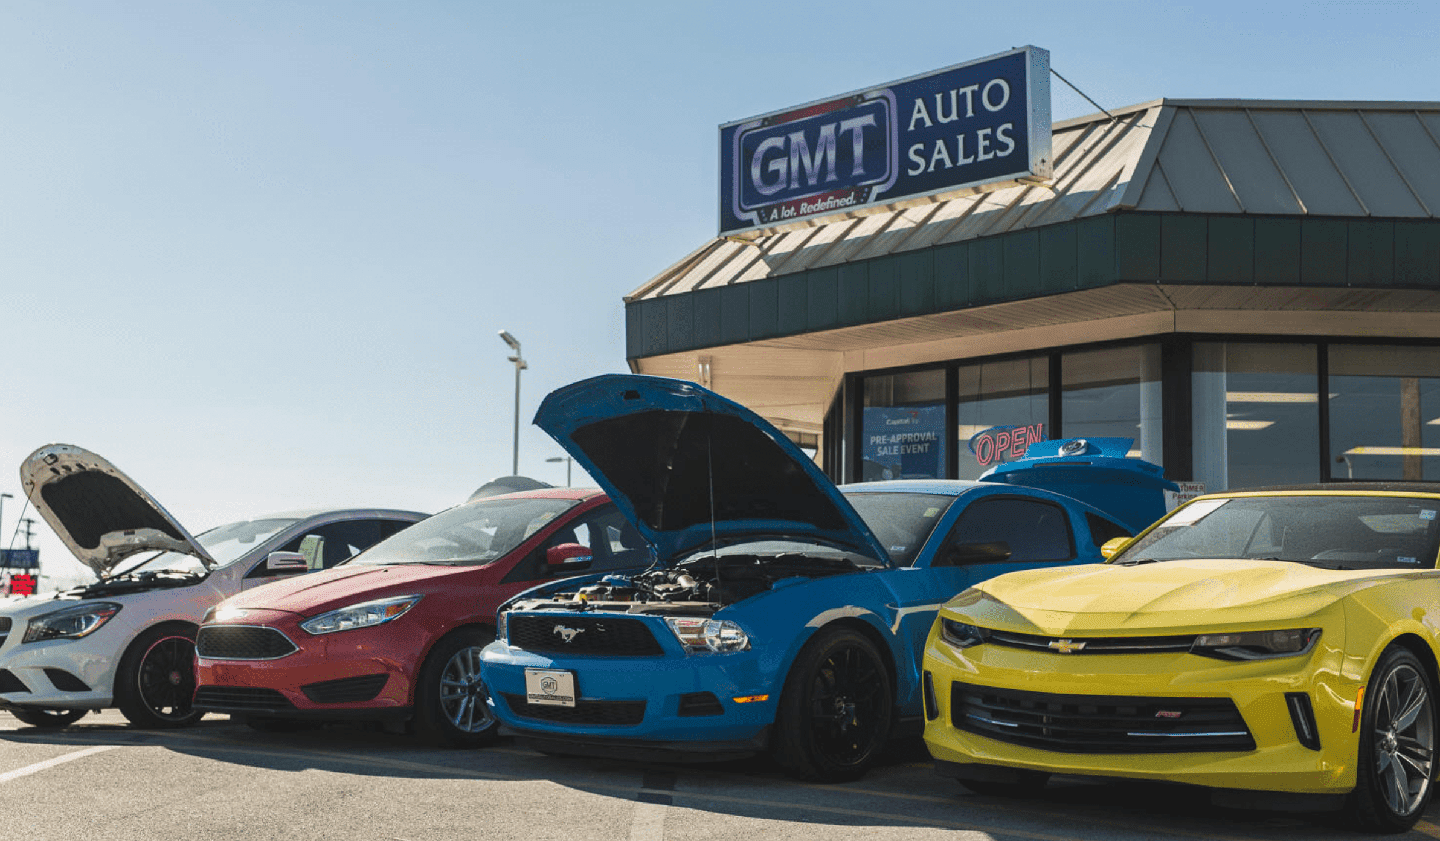 Used Car Dealerships >> Used Car Dealer In Florissant Mo Travers Gmt Auto Sales North